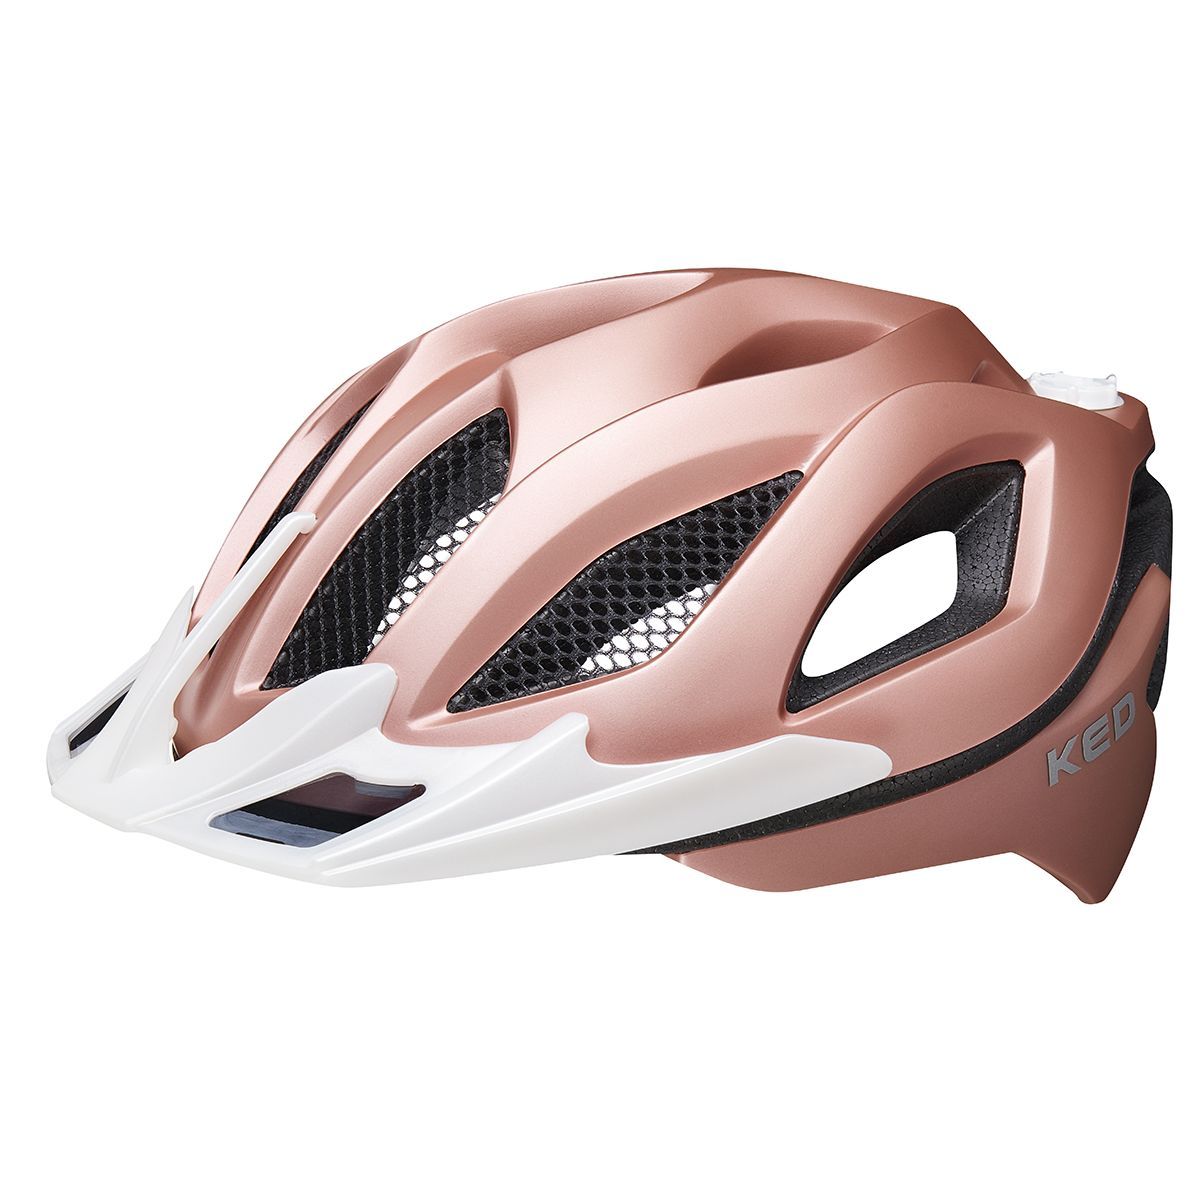 SPIRI TWO bike helmet